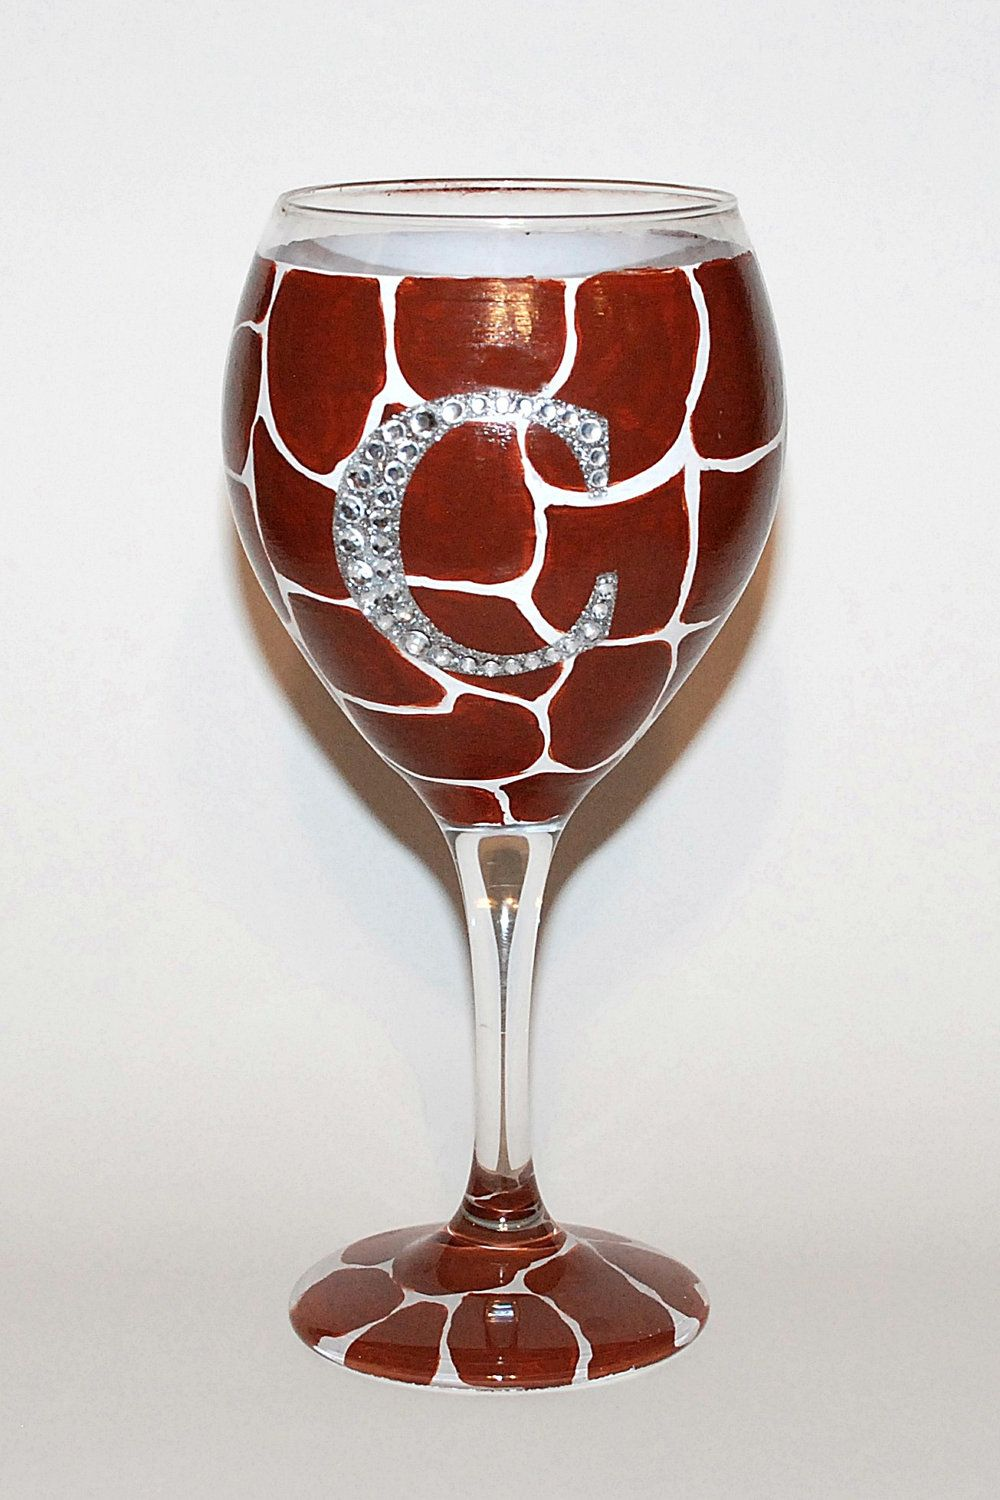 Hand Painted Giraffe Wine Glass With Bling Initial Decorated Wine Glasses Wine Glass Designs Hand Painted Wine Glasses